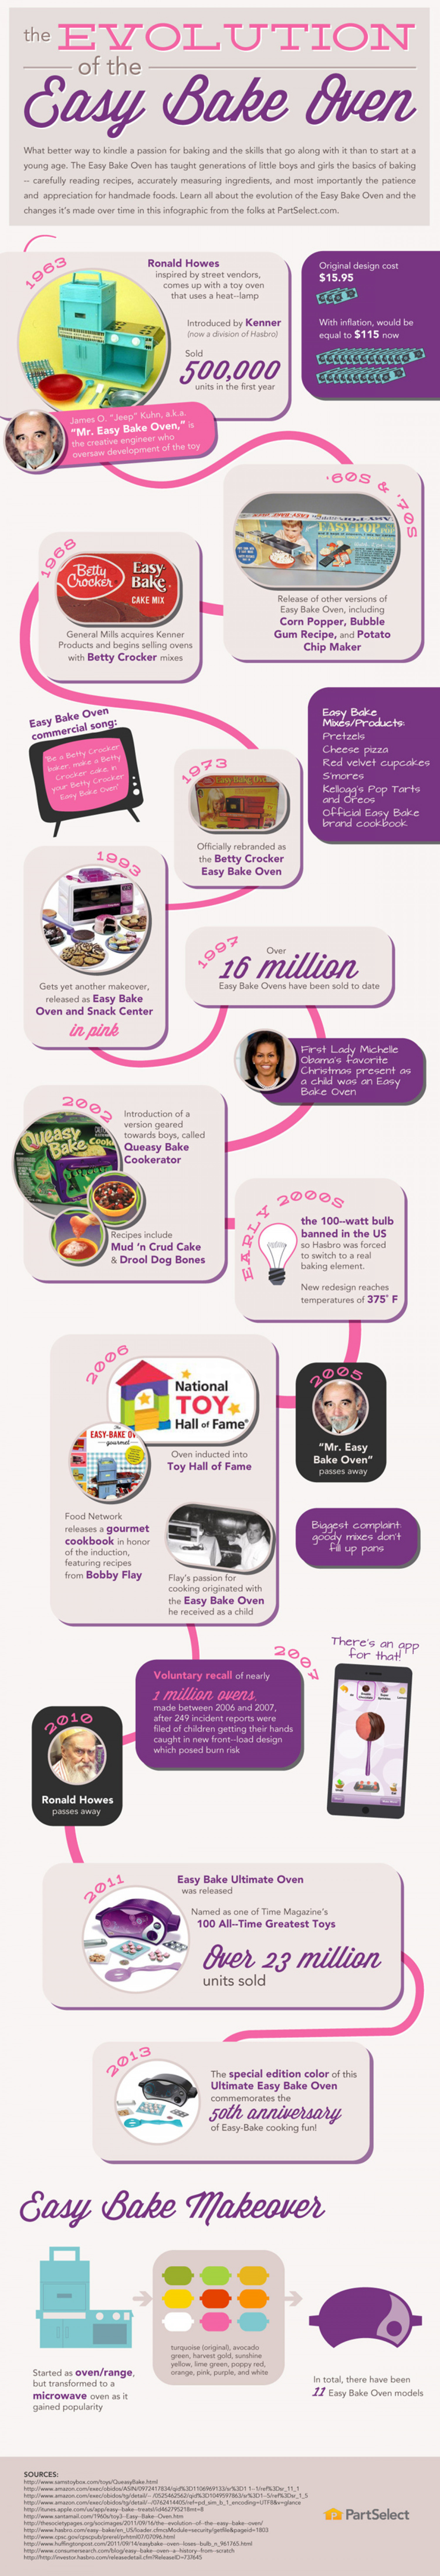 The Evolution of the Easy Bake Oven Infographic